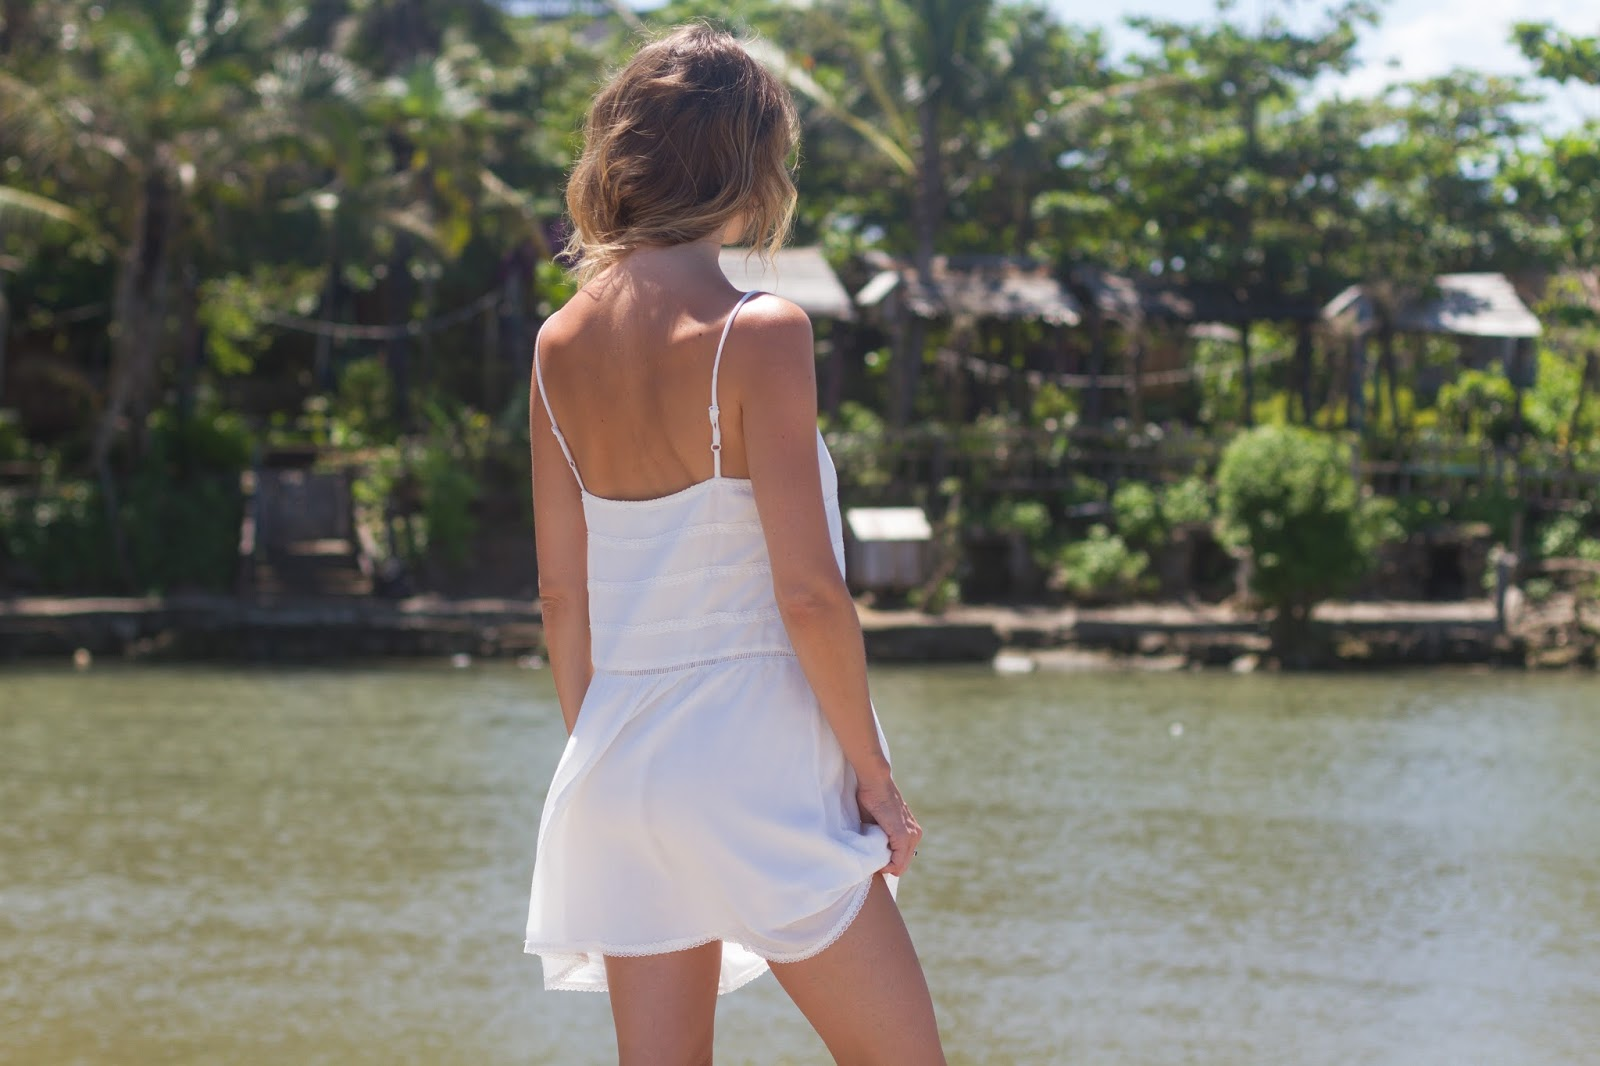 Fashion blogger and designer, Alison Hutchinson, is wearing a KAYVALYA Maya Dress in white